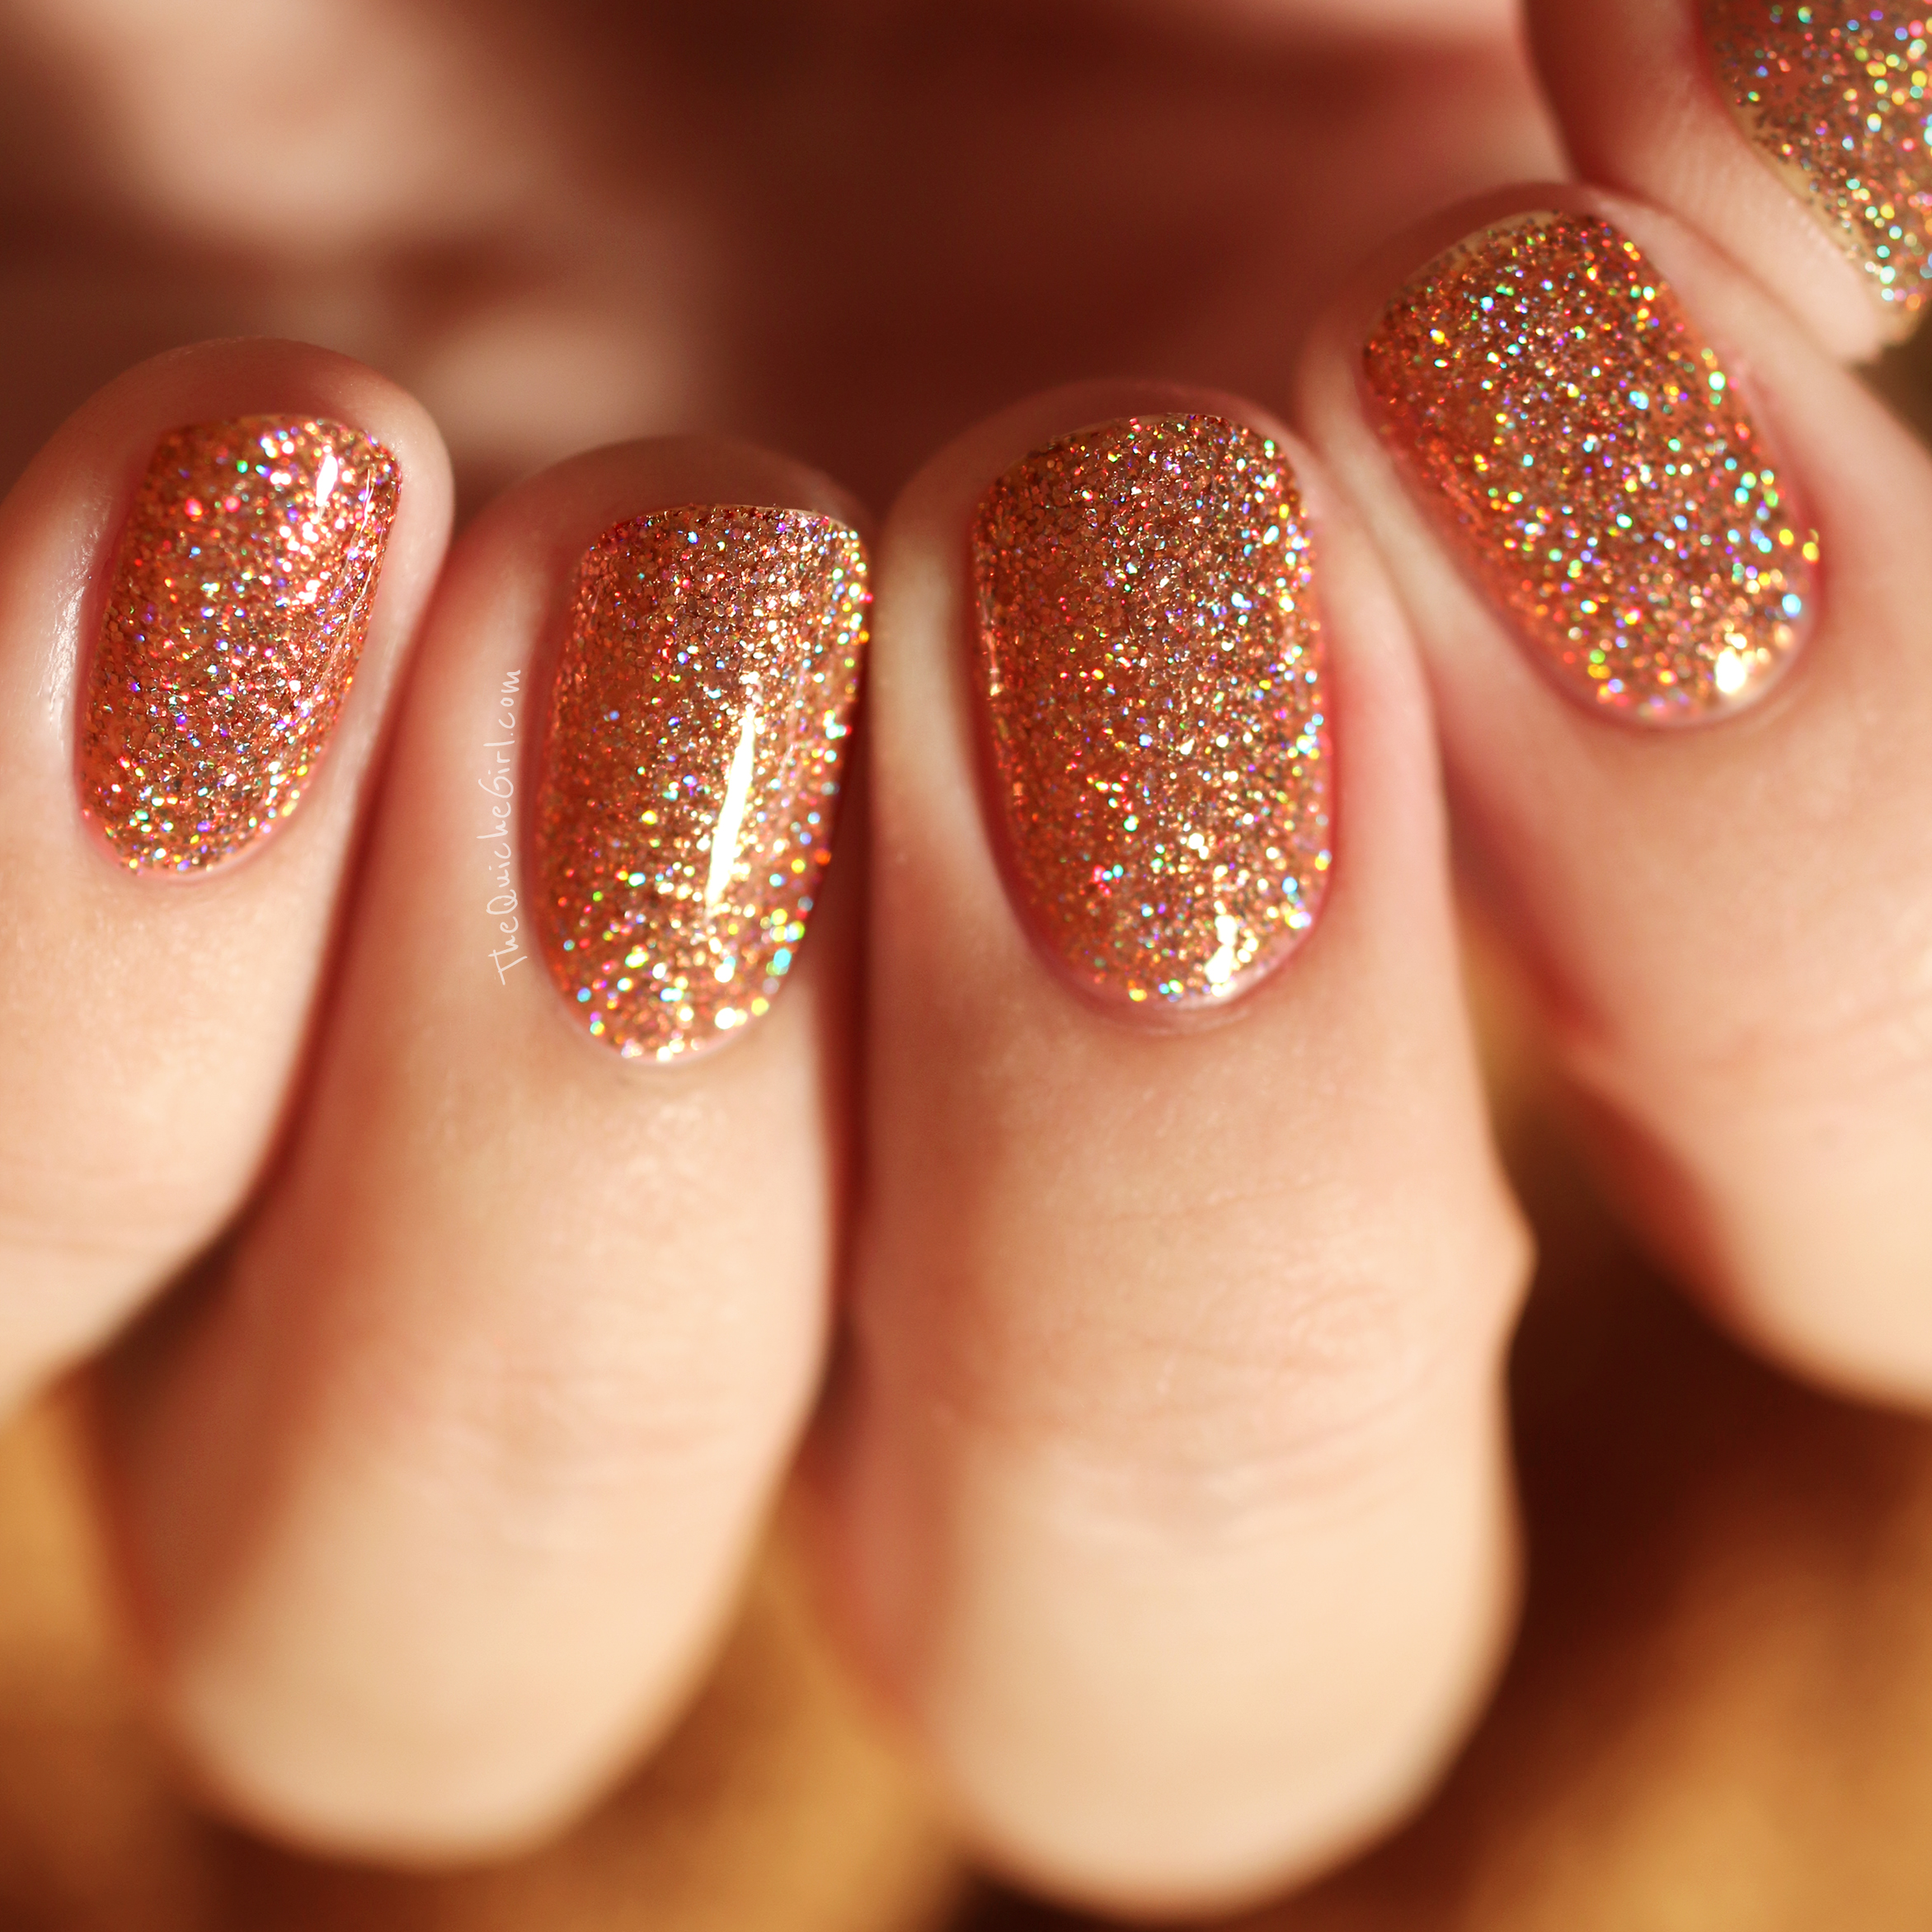 royal chapel, fun lacquer, macro, glitter , quichegirl